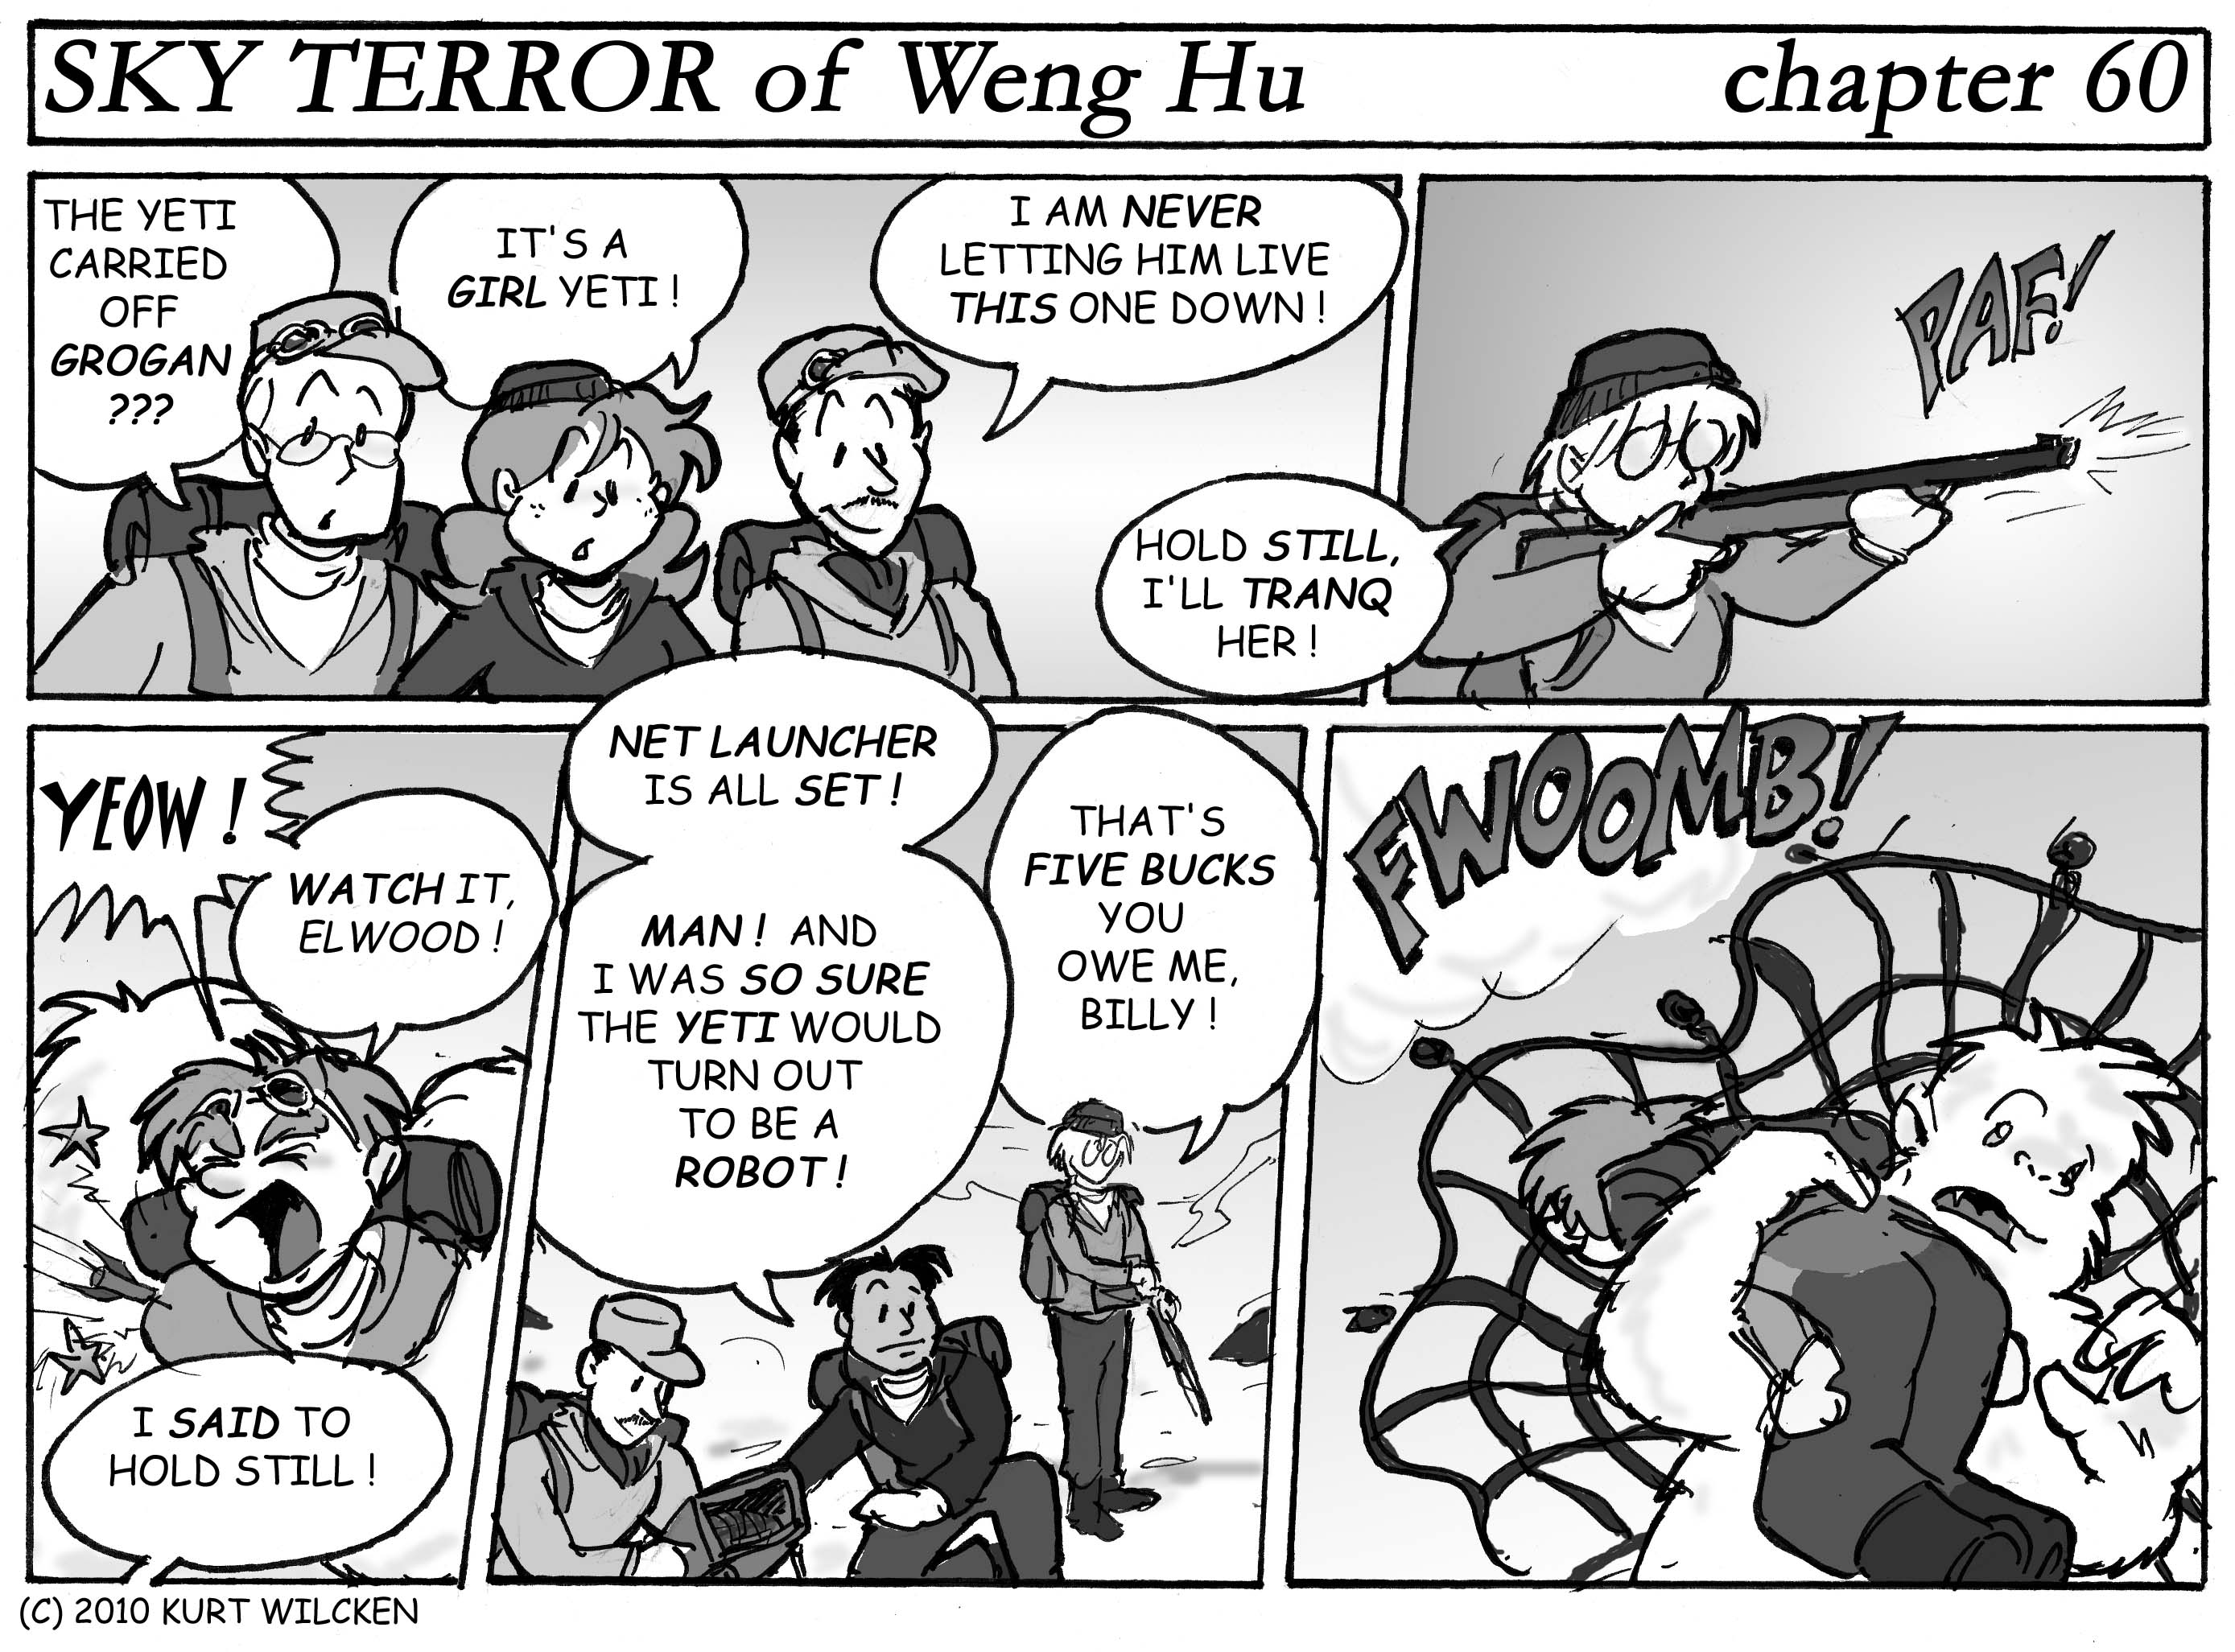 SKY TERROR of Weng Hu:  Chapter 60 — Stop That Yeti !